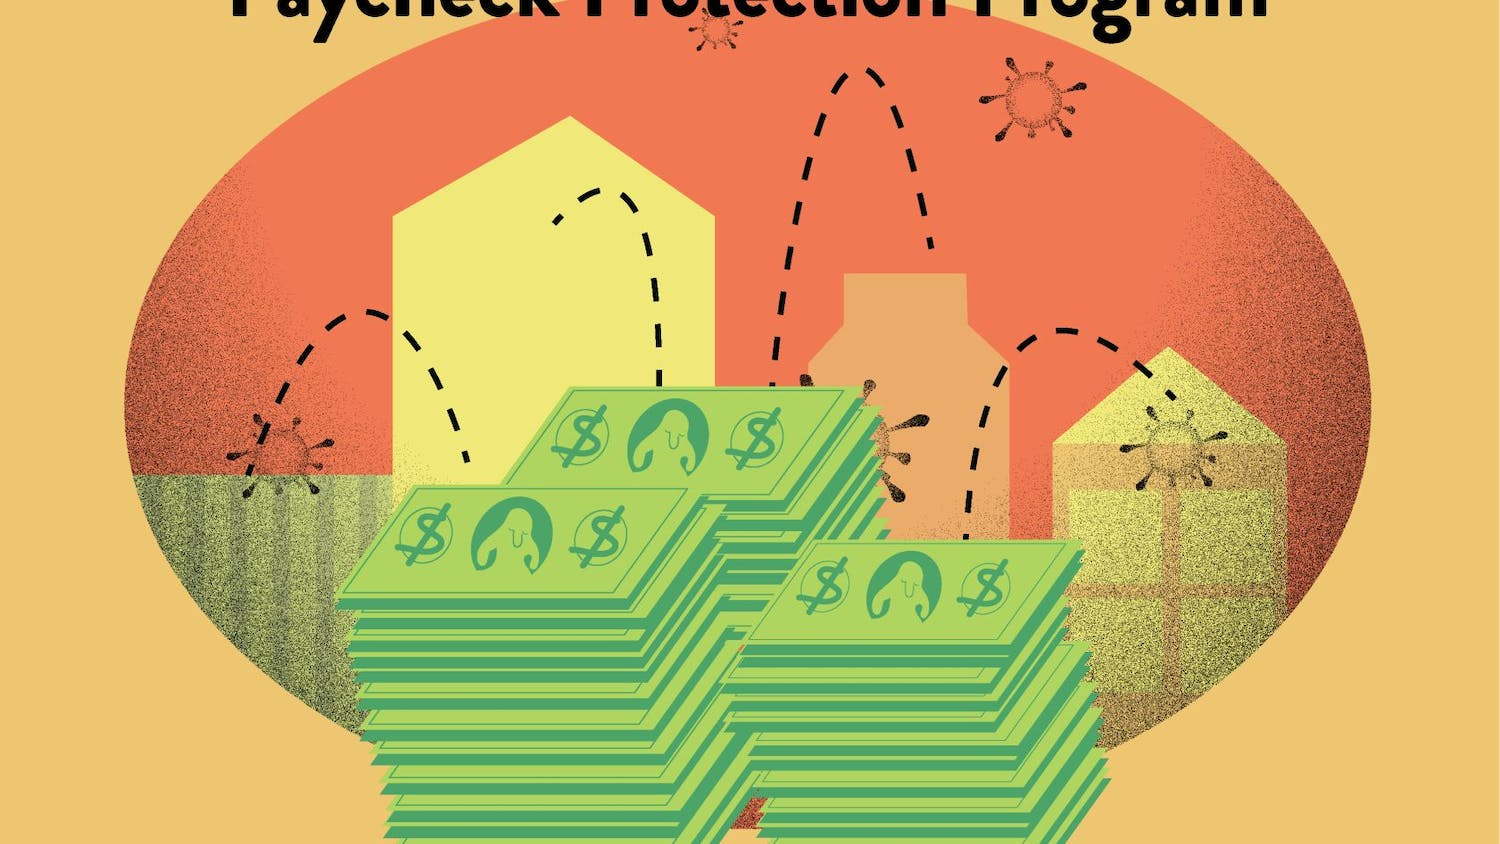 The Paycheck Protection Program under the CARES Act provides loans to cover payroll costs, interest on mortgages and rent and utilities of businesses that have been affected by COVID-19, according to the U.S. Small Business Administration.